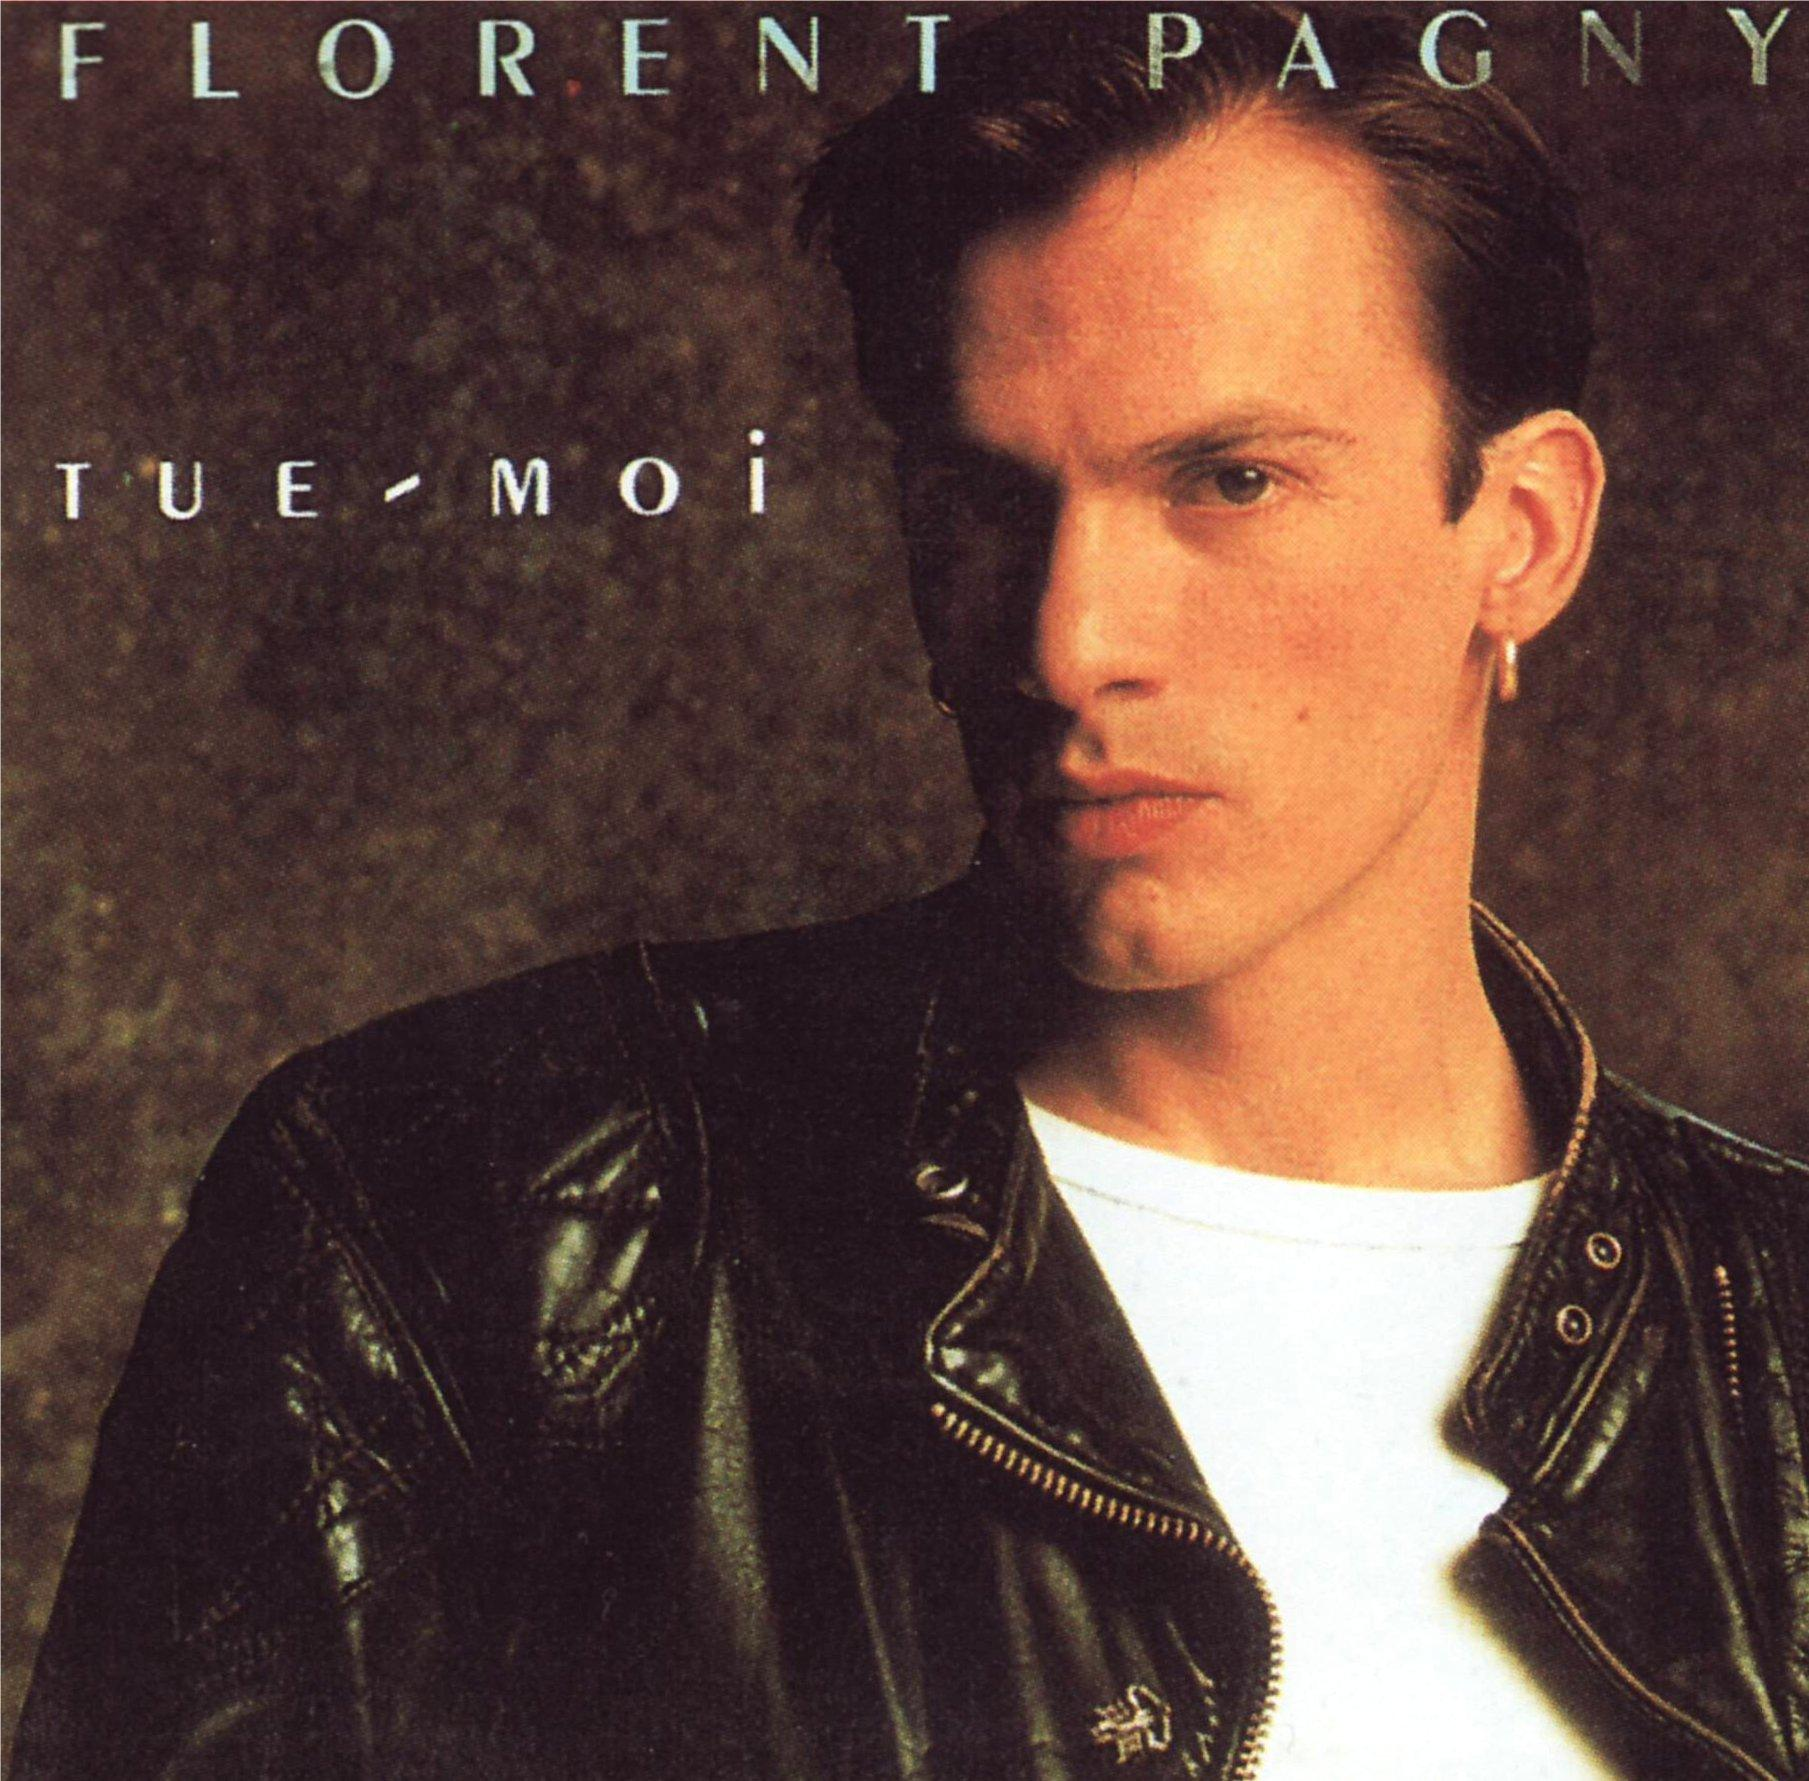 Tue moi Florent Pagny